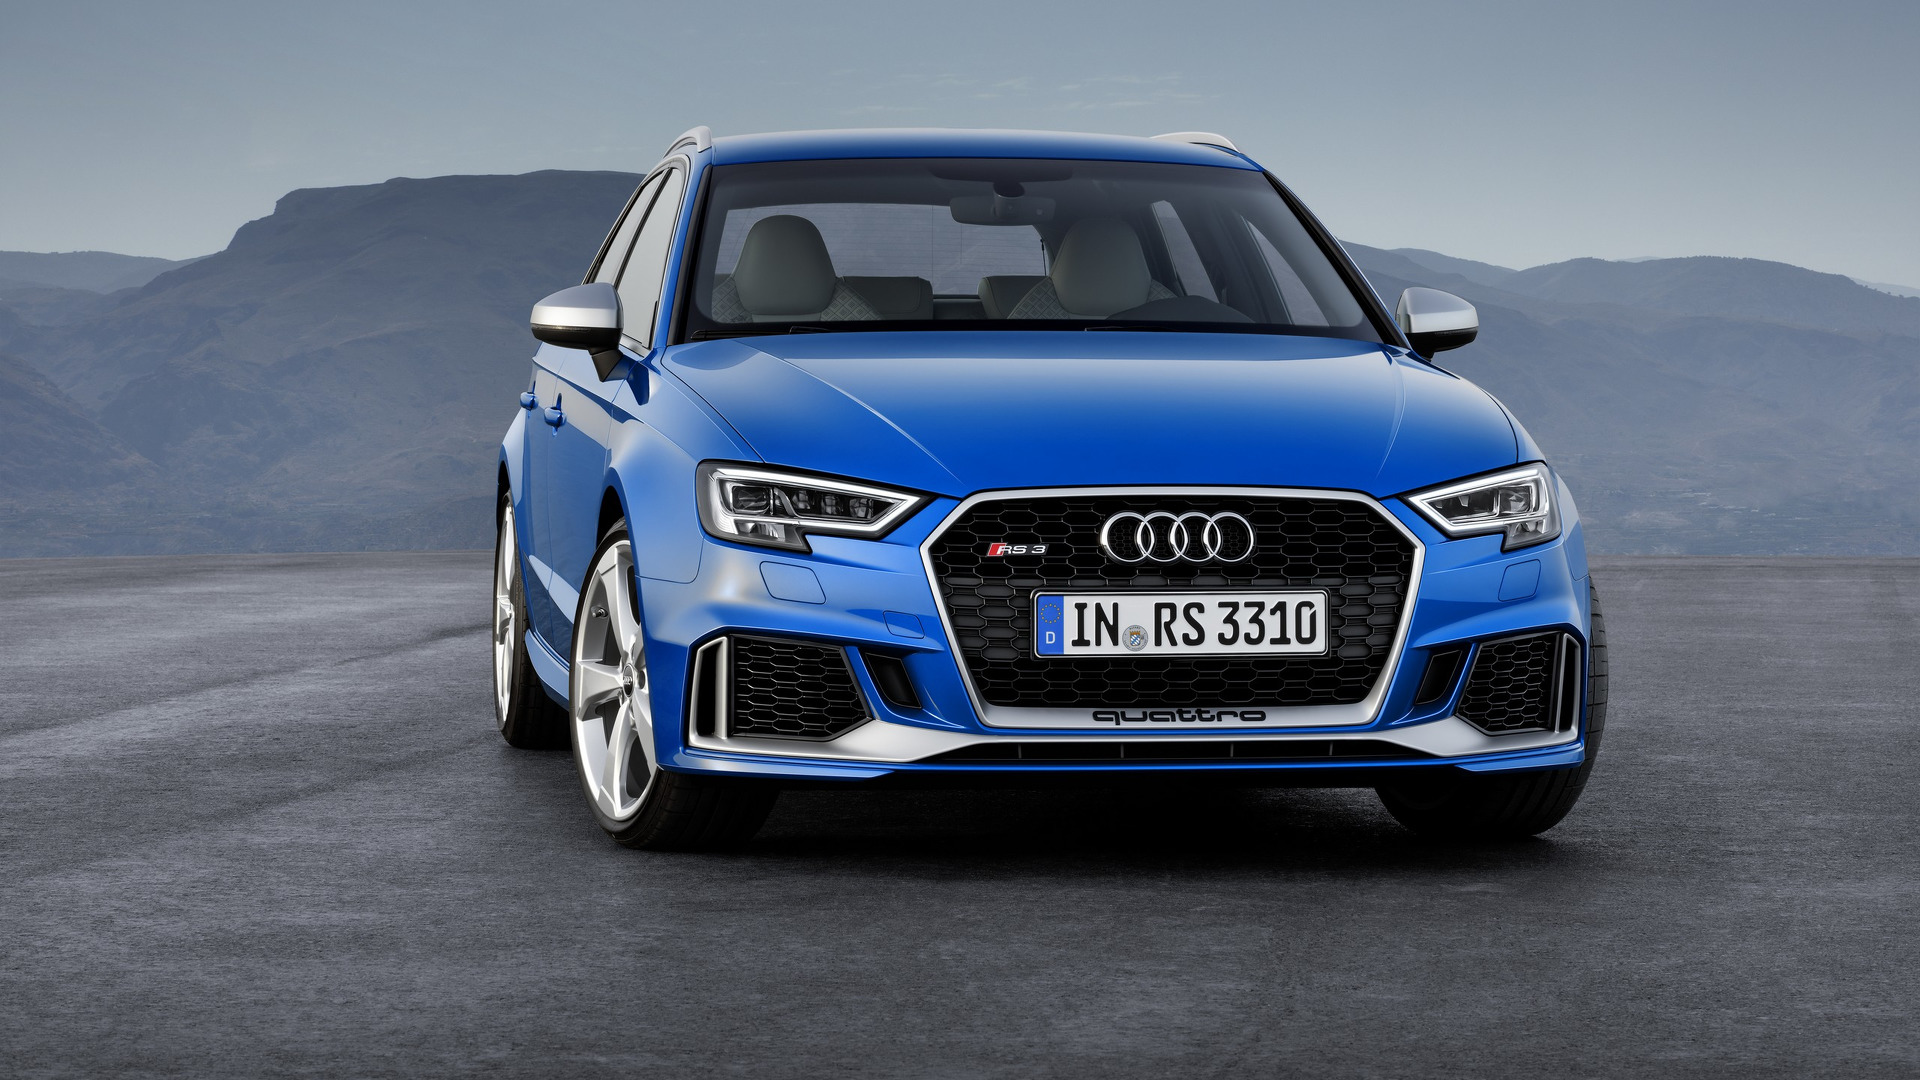 Audi Rs3 Production Temporarily Stopped For Europe Because Of Wltp